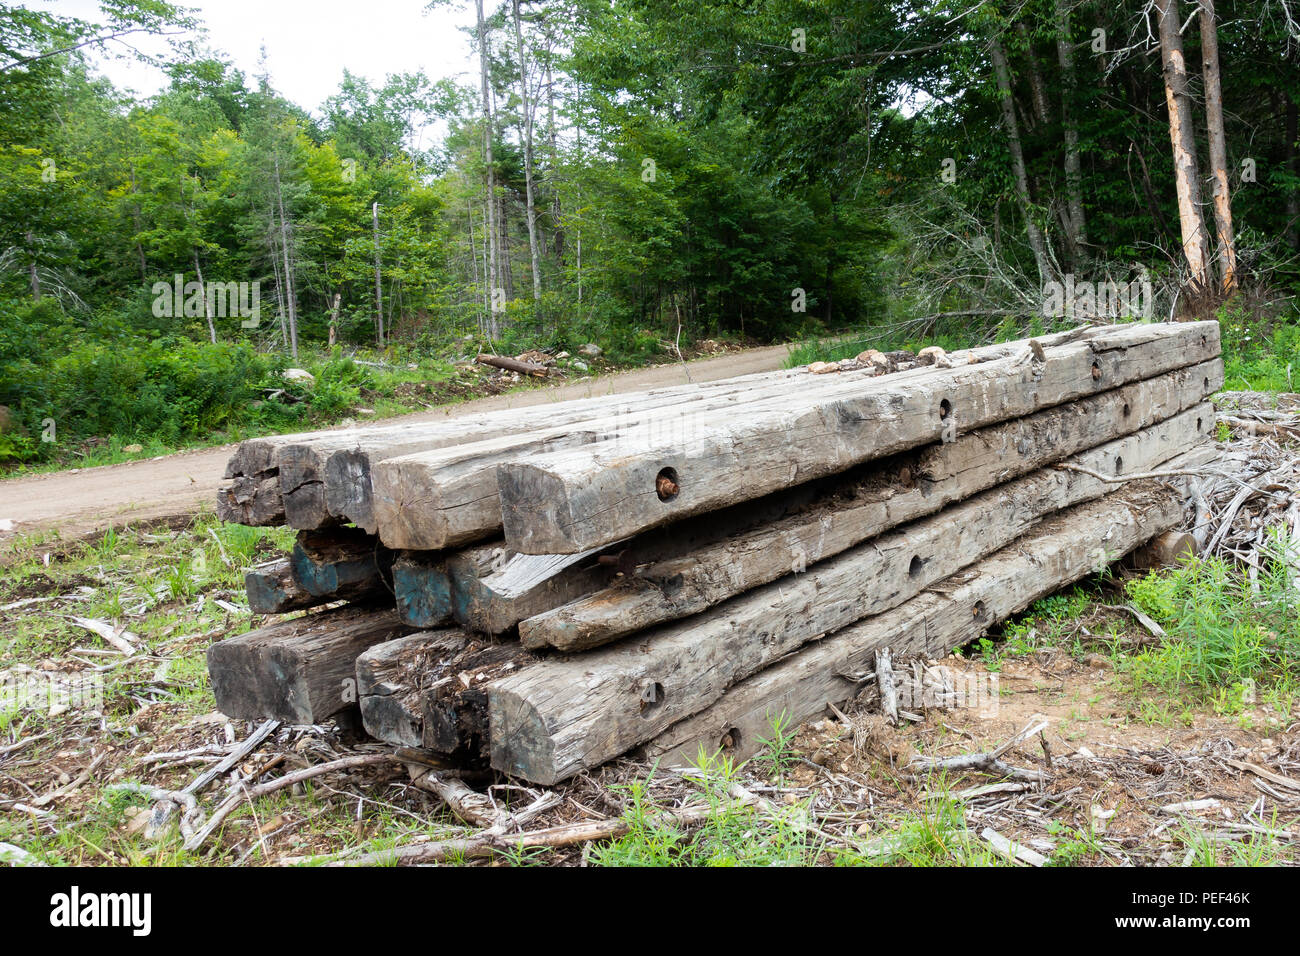 A pile of wooden timbers in the Adirondack forest used to build logging bridges in the winter. - Stock Image